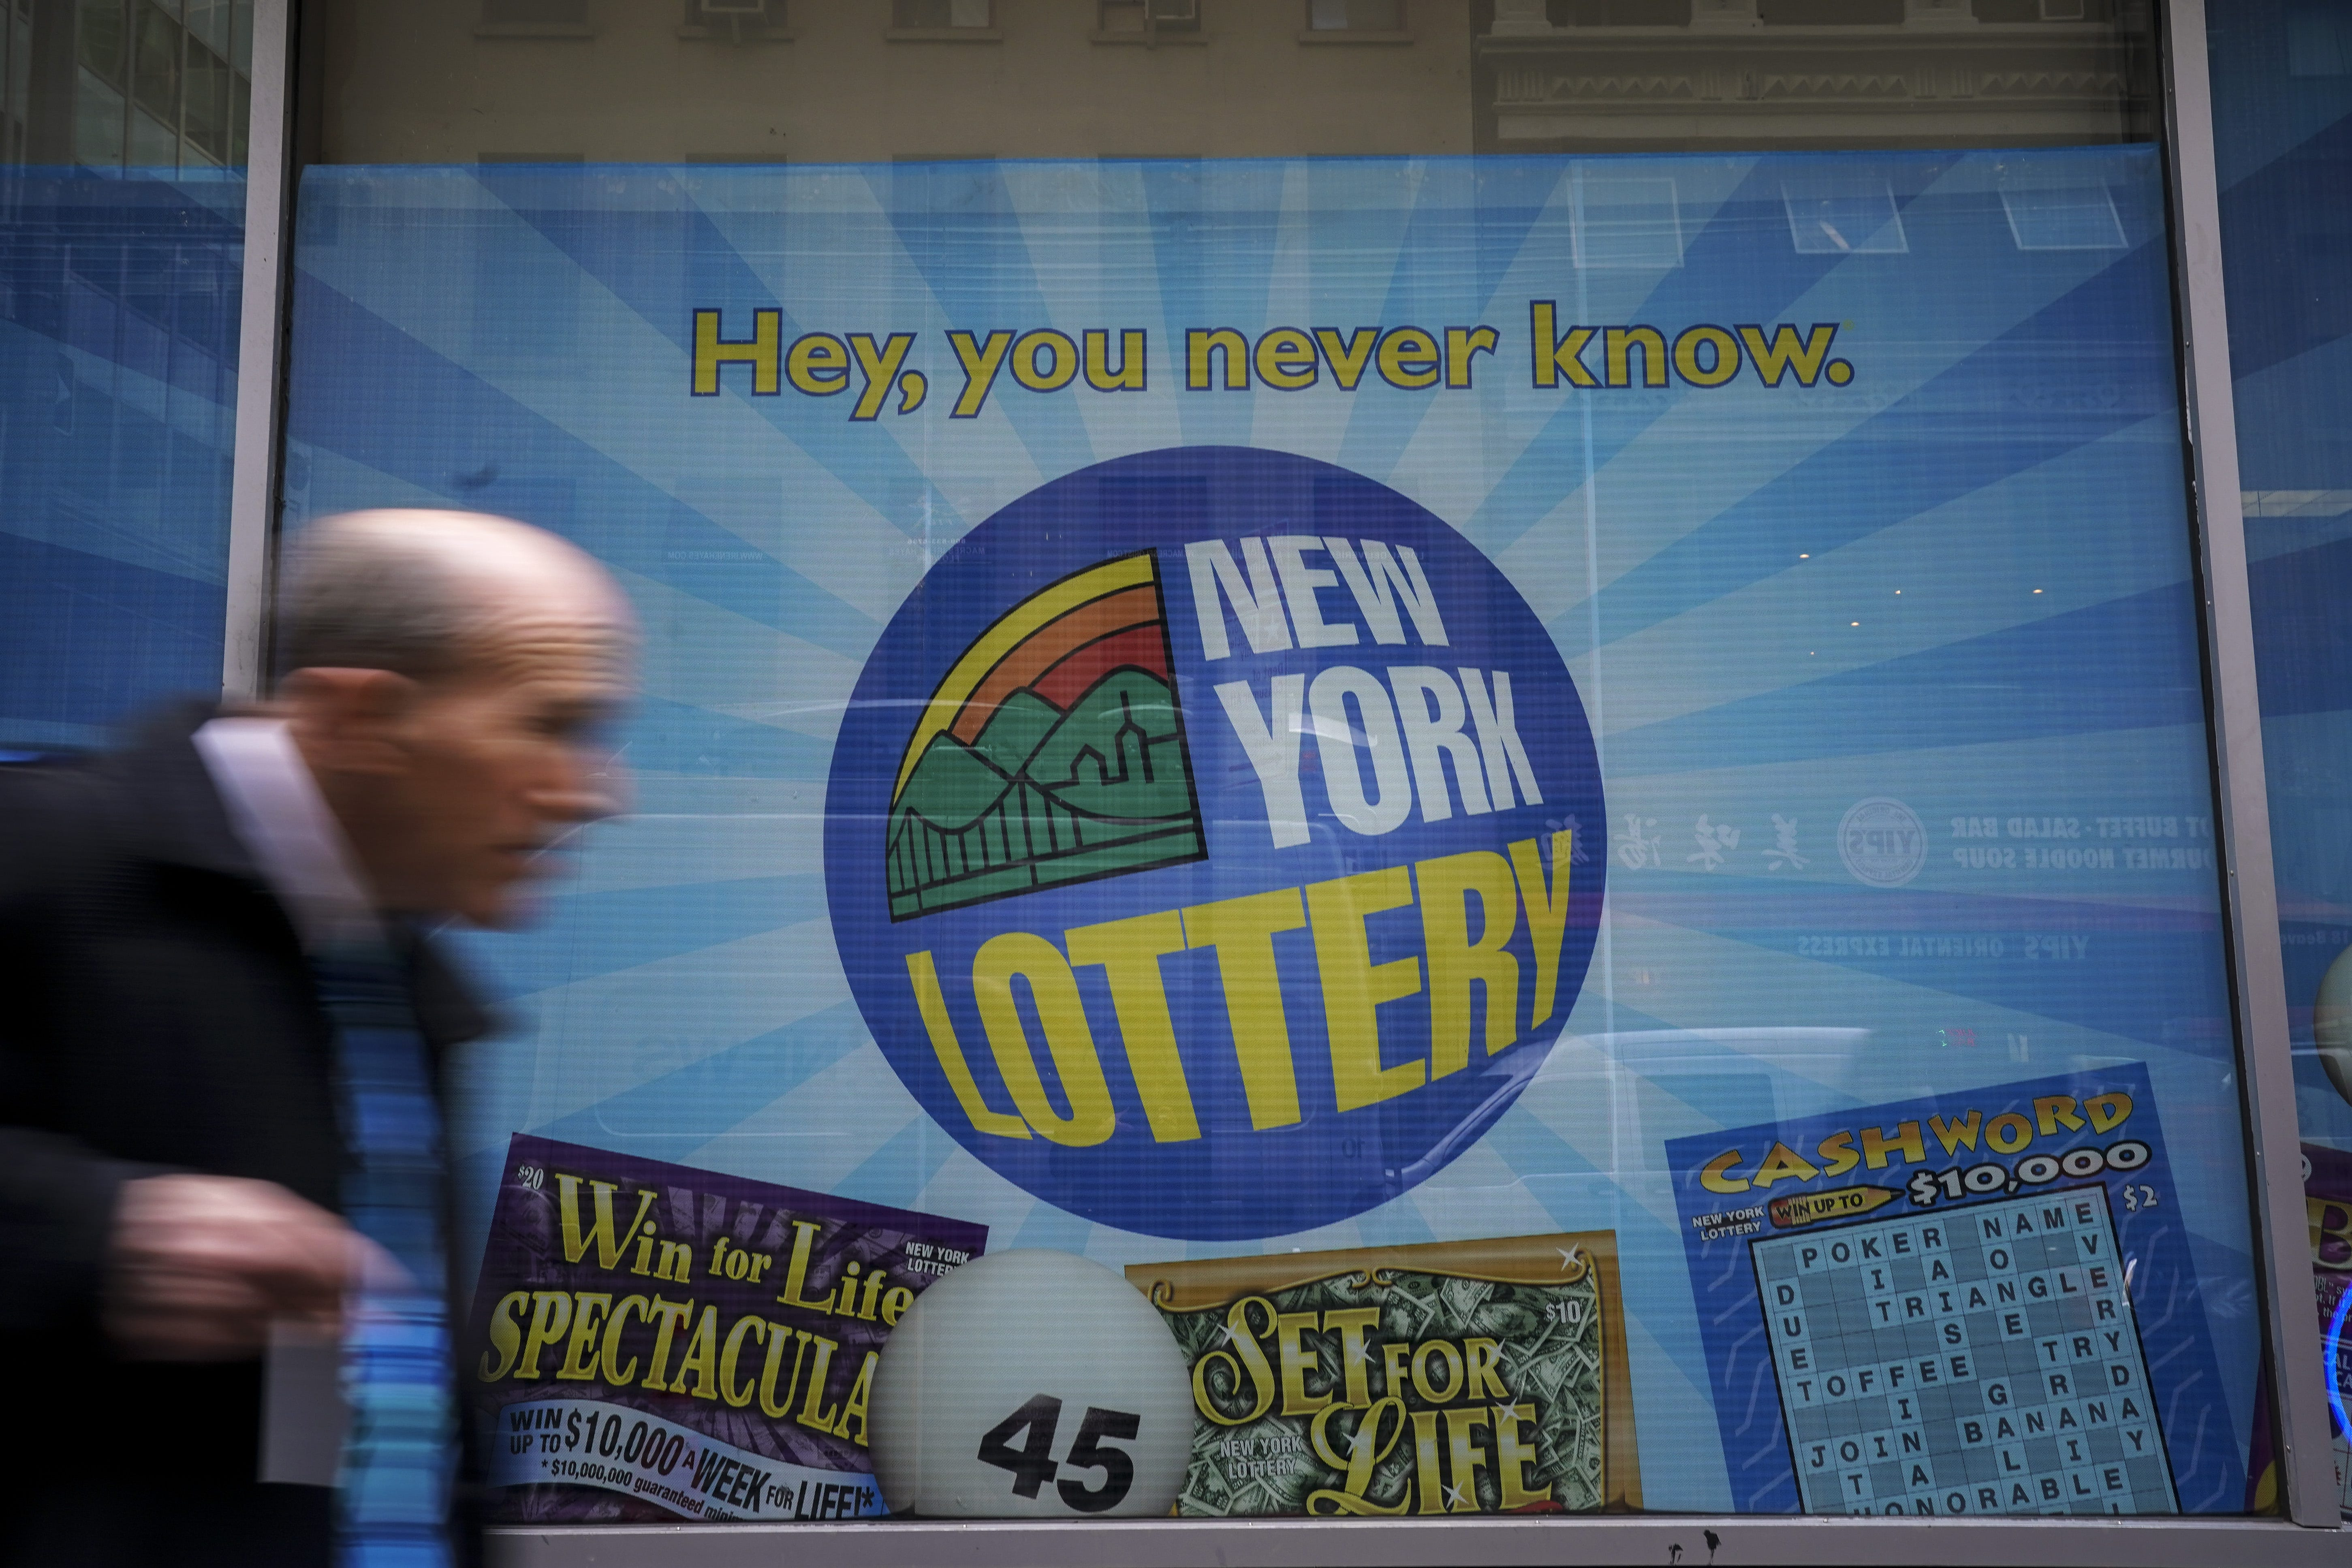 New York S Drawing Times For Lottery Games Is Changing The New Schedule